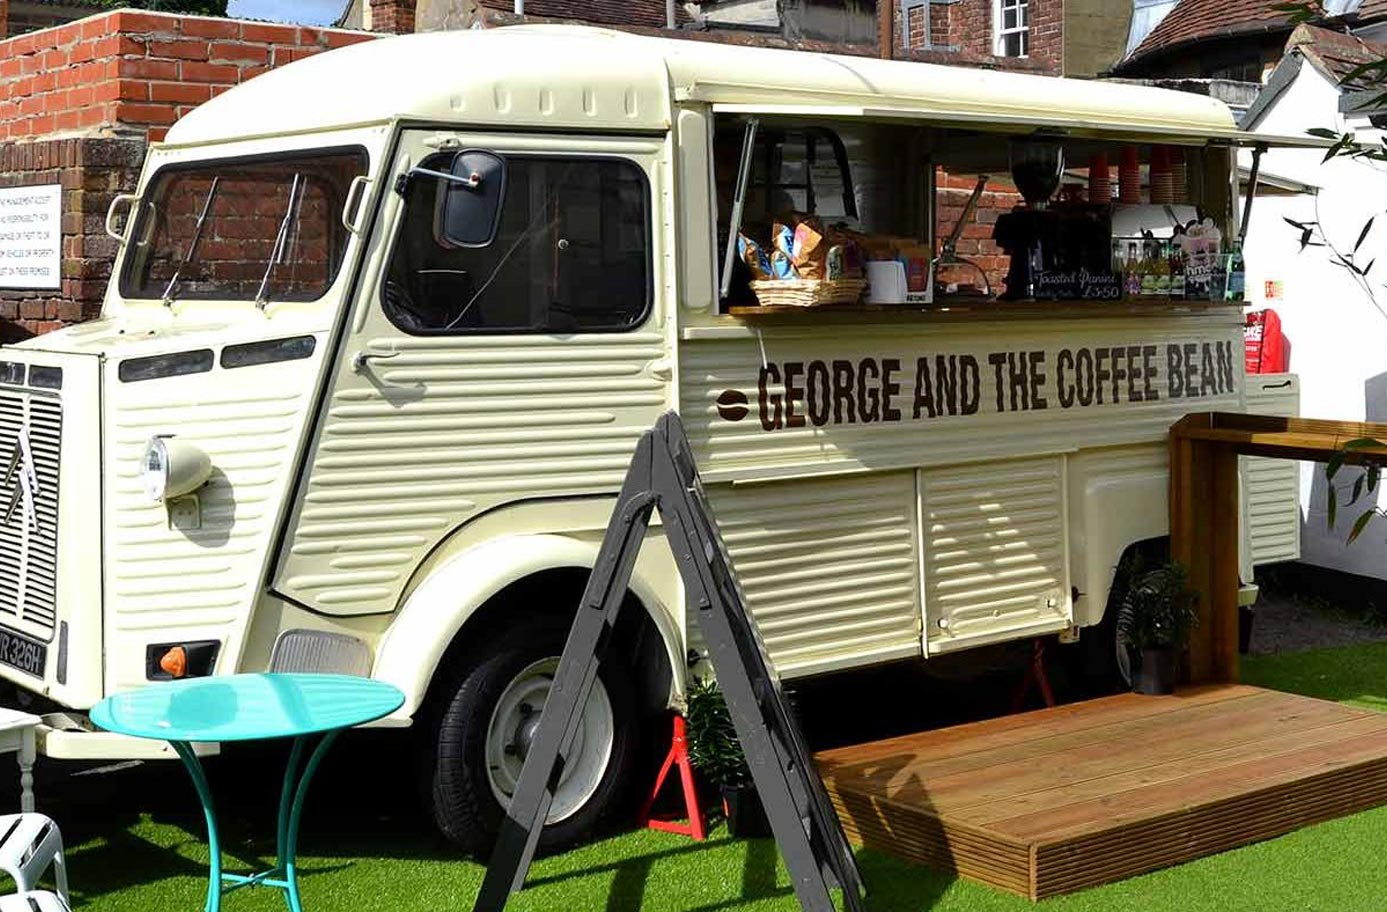 George and the Coffee Bean at Draper's Yard Market and Studios in Chichester